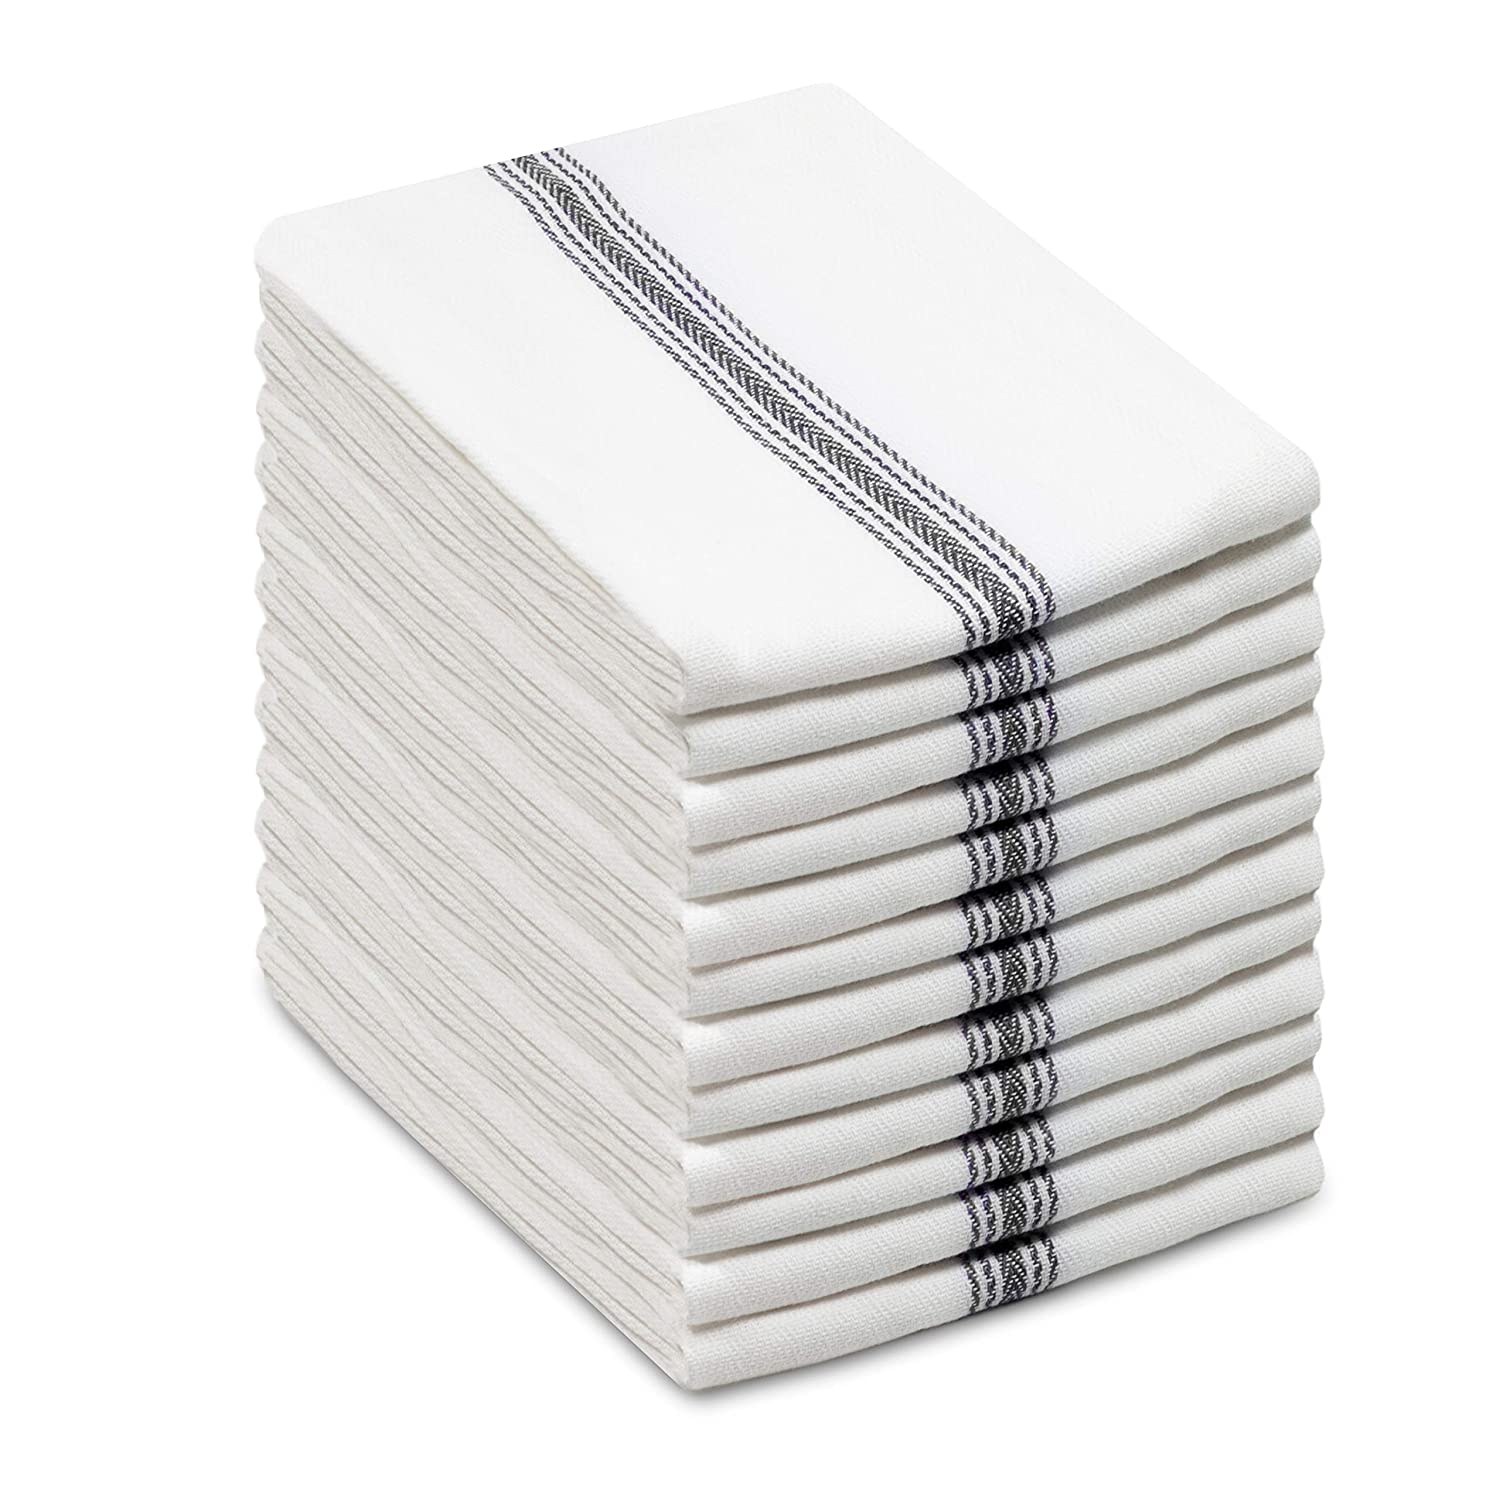 Cotton Craft - Scandia Stripe Charcoal & White 12 Pack Superior Professional Grade Kitchen Dish Tea Towels - May Also be Used as Napkins - 16x28 30 Ounces Pure 100% Cotton, Low Lint, Sturdy Weave